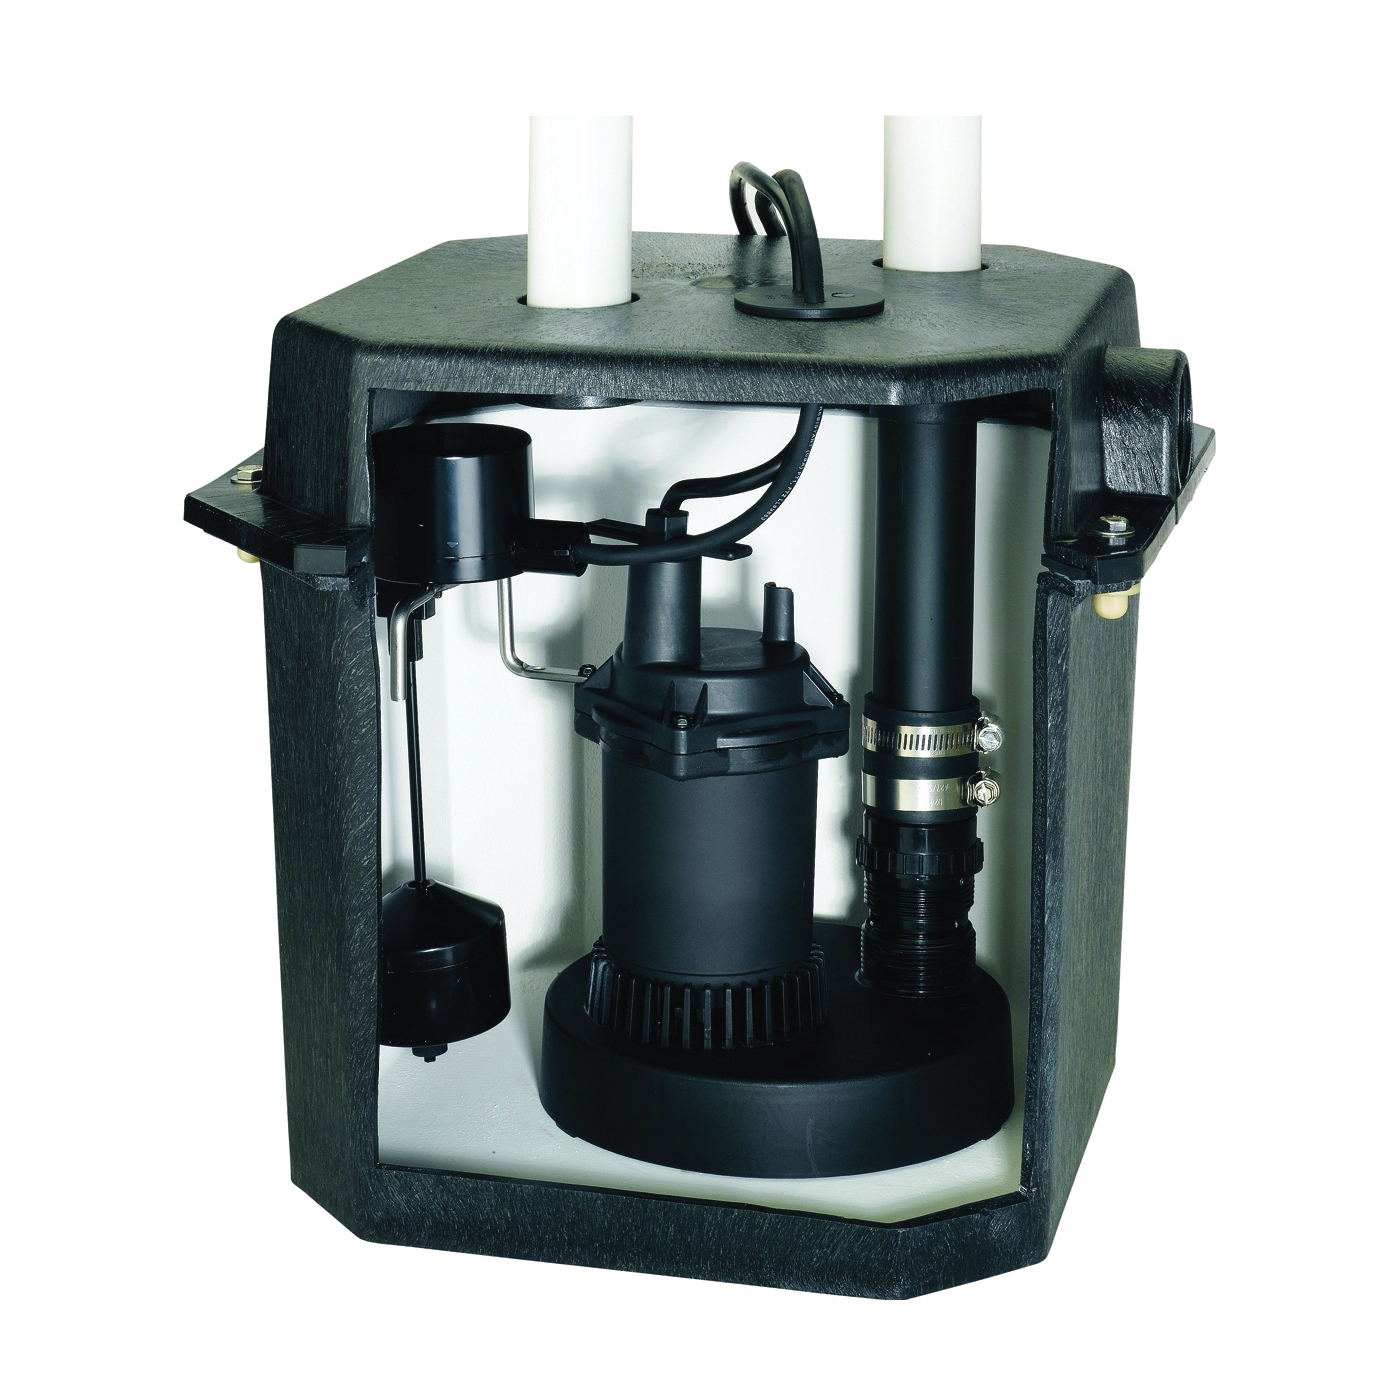 Picture of Sta-Rite Flotec FPZS33LTS/FPOS180 Sink Pump System, 8.5 A, 115 V, 0.33 hp, 1-1/2 in Outlet, 22 ft Max Head